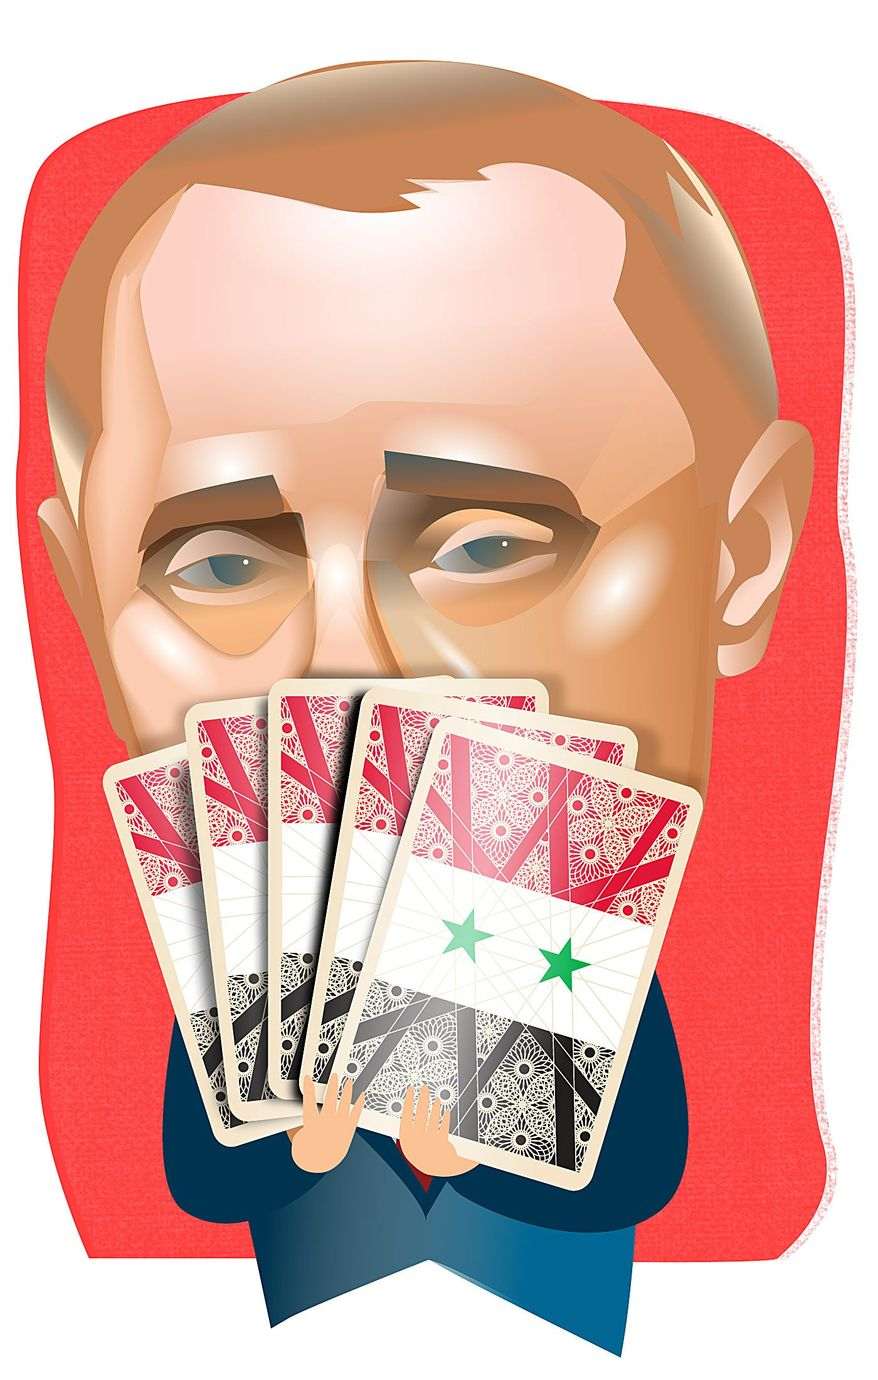 Illustration on Putin's moves in Syria by Linas Garsys/The Washington Times